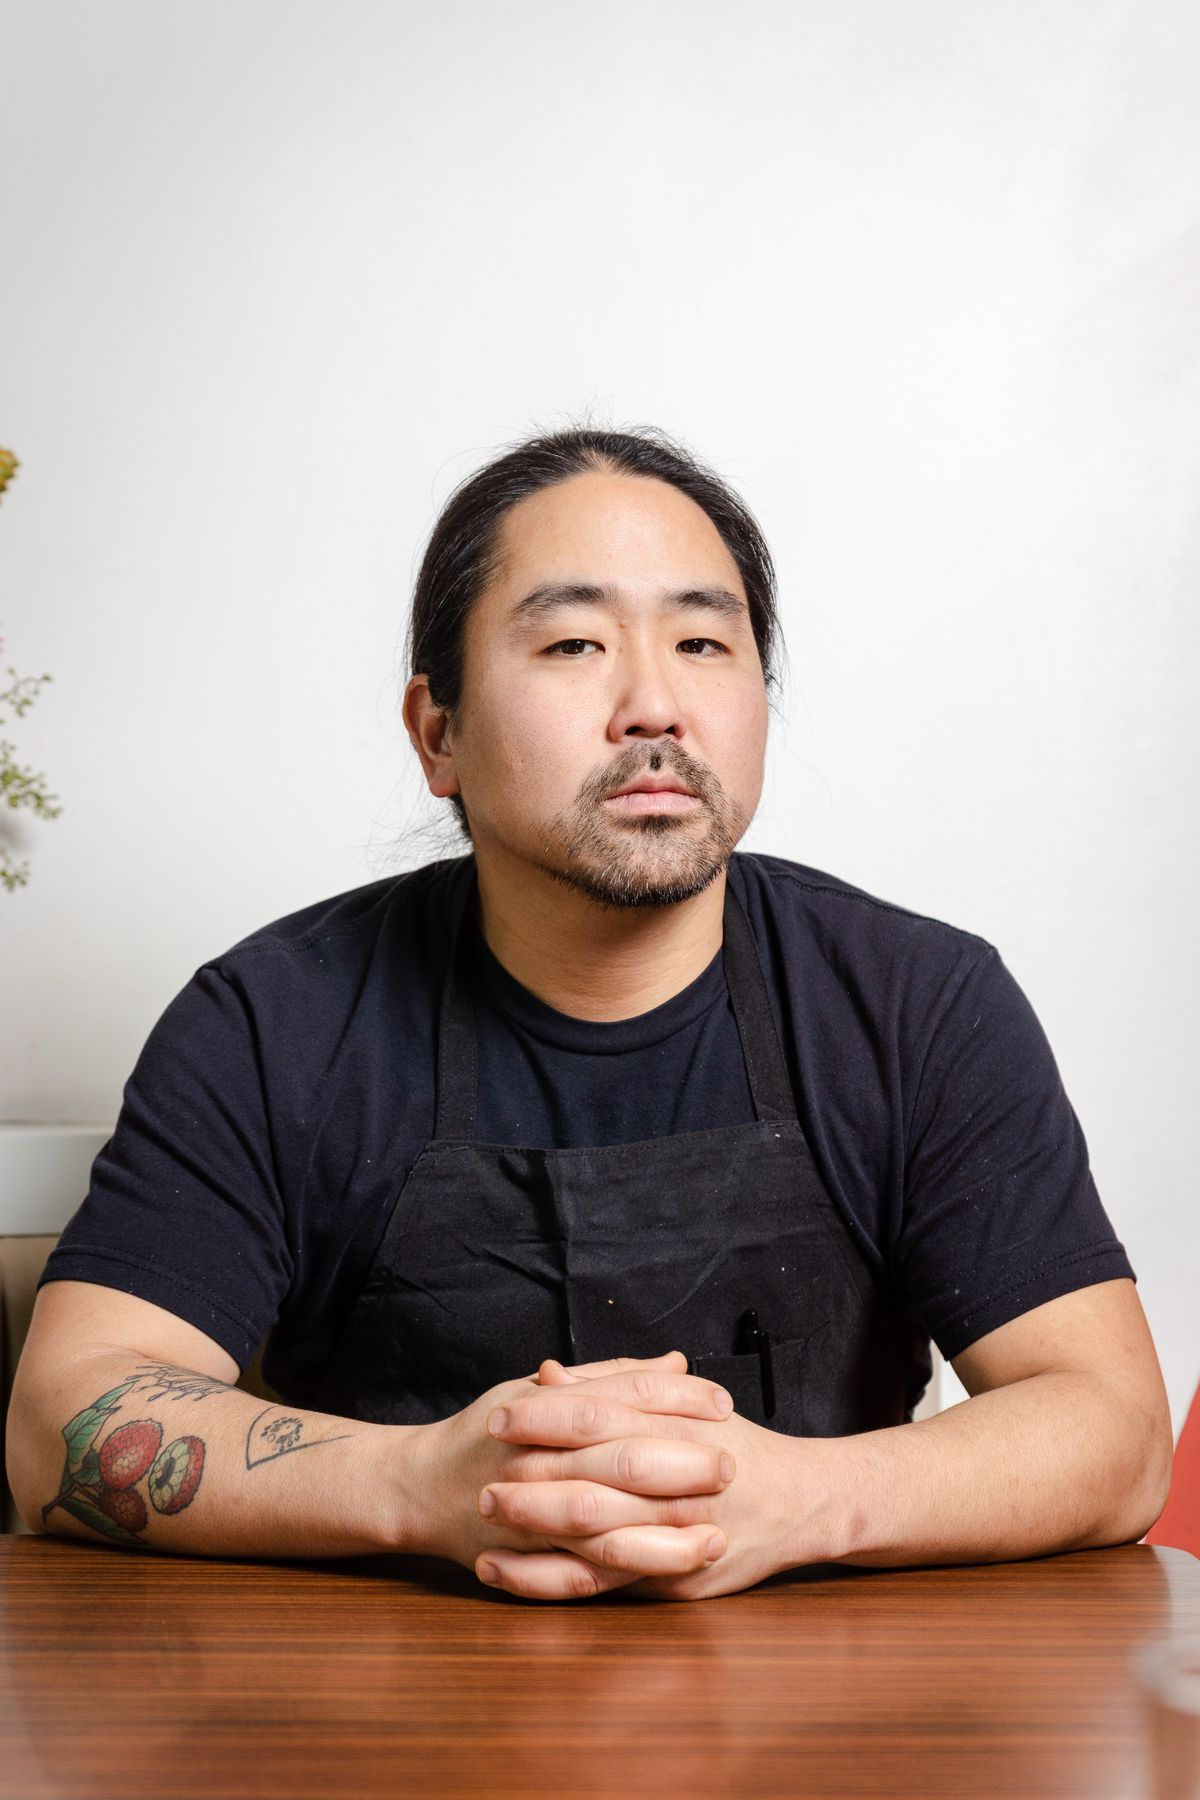 Colin Yoshimoto, the chef de cuisine at Eem, stares with a blank face at the camera. He sits at a table, not smiling, with his long hair pulled back behind him. He's wearing a black apron, with a colorful tattoo of a flower on his arm.